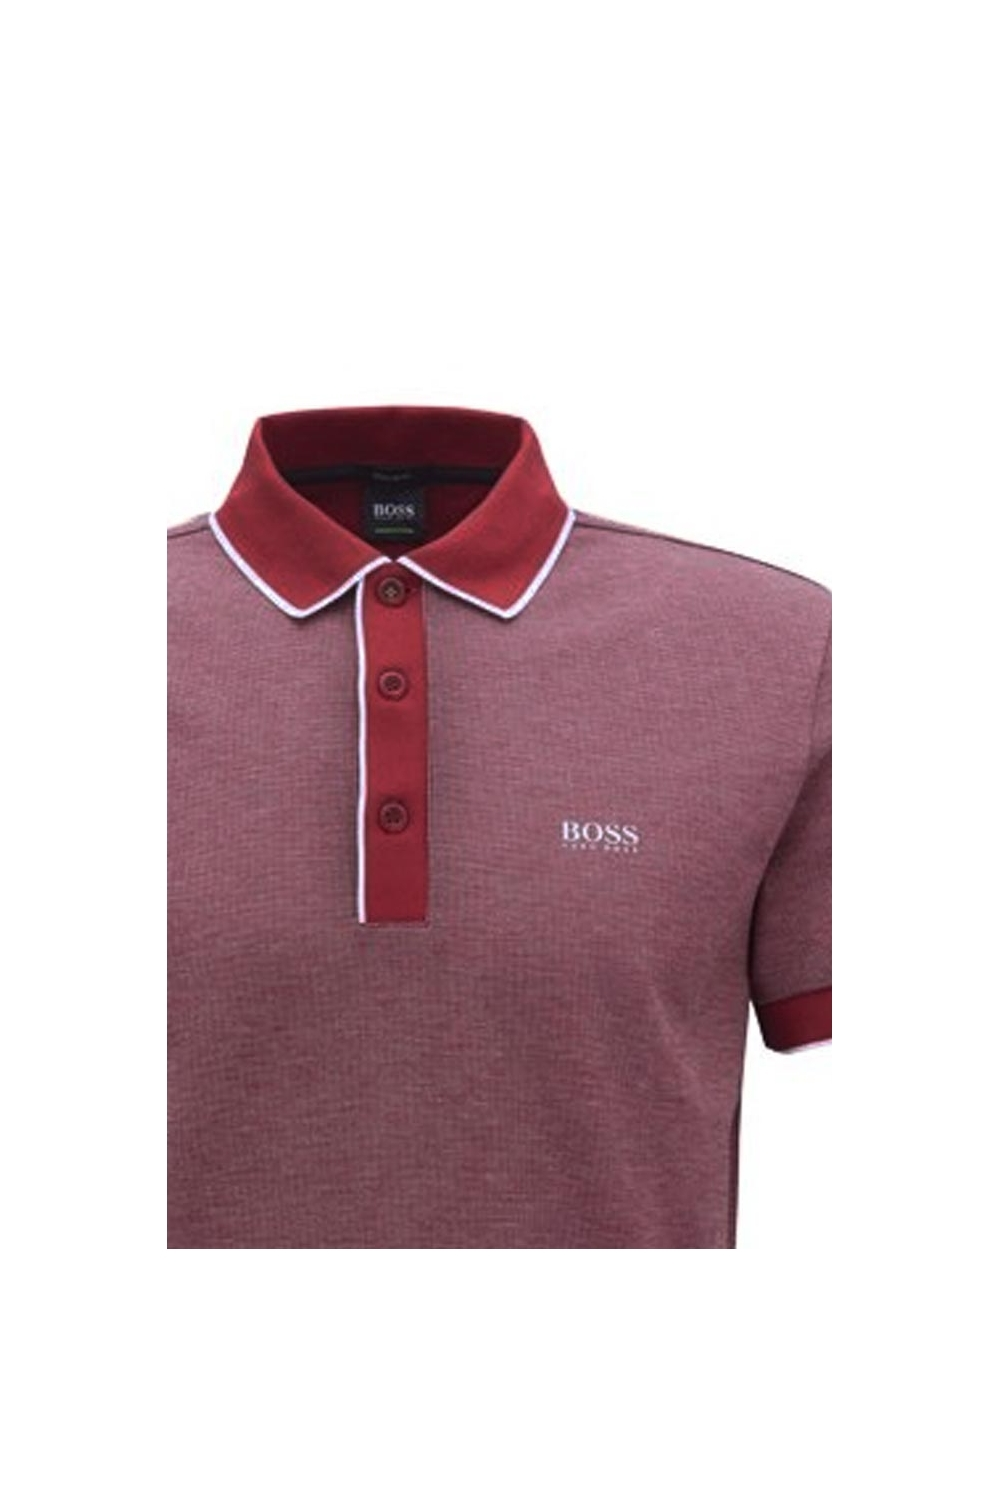 89a450453eb Hugo Boss Green Paddy Polo 5 in Dark Red 50392665